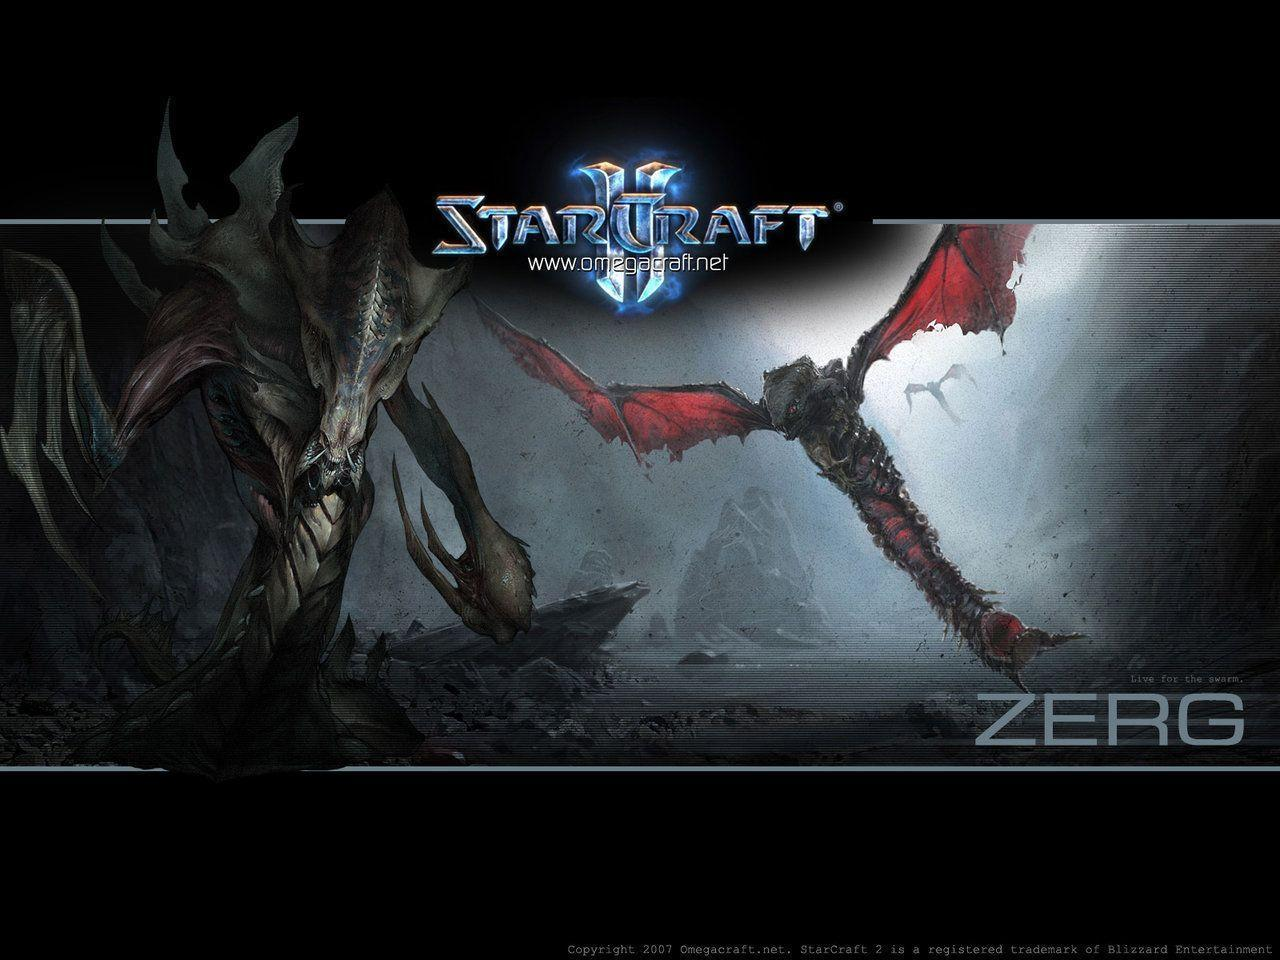 Starcraft 2 Zerg Wallpapers by maul